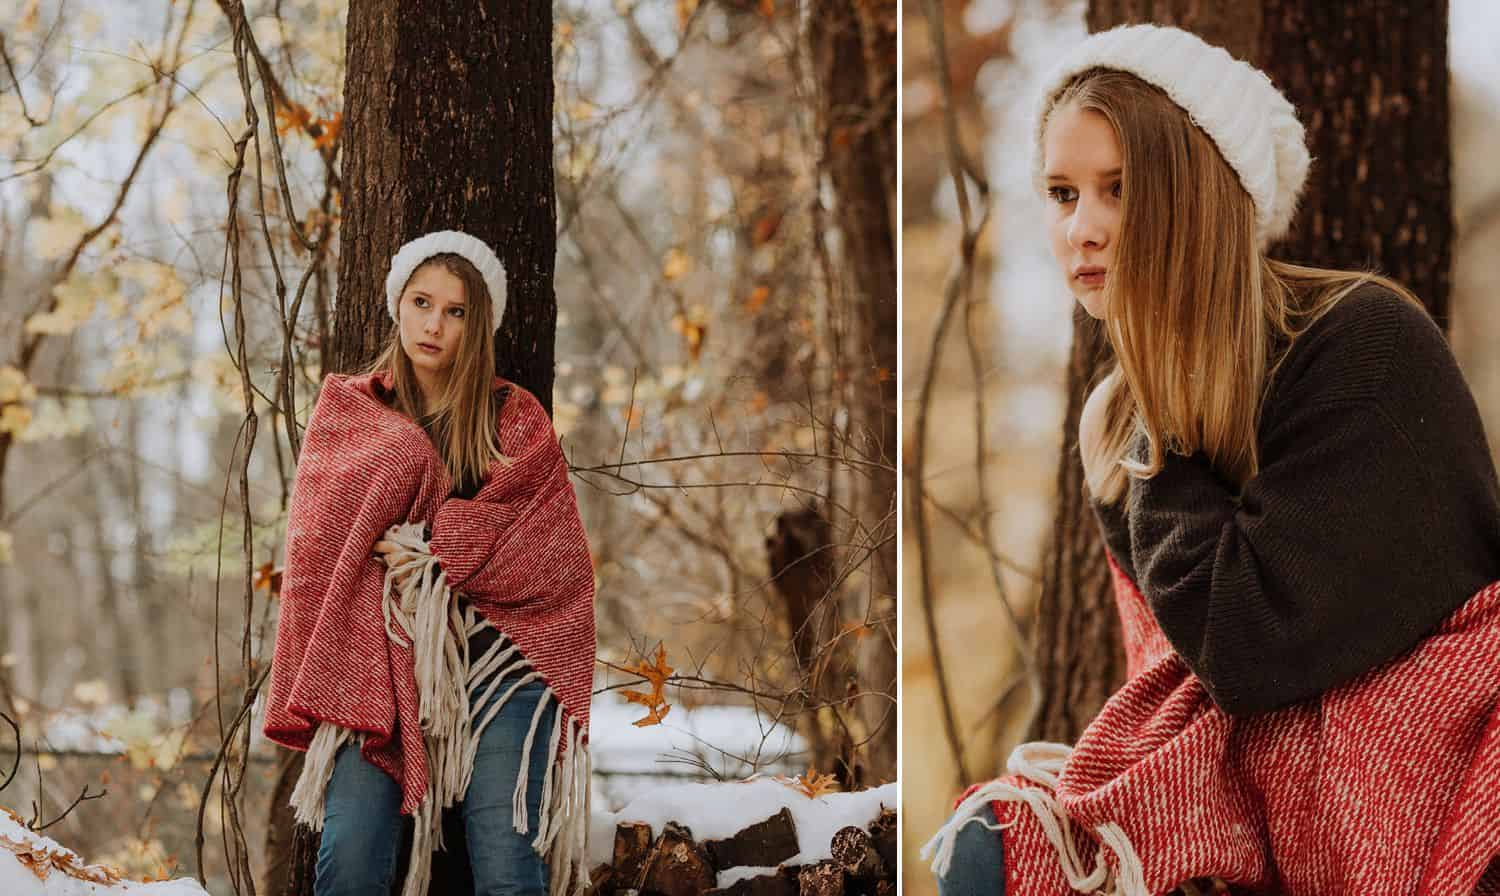 Work year-round when you book beautiful winter photography sessions! Here are the tips, tricks, and poses you need to make your winter wonderful.